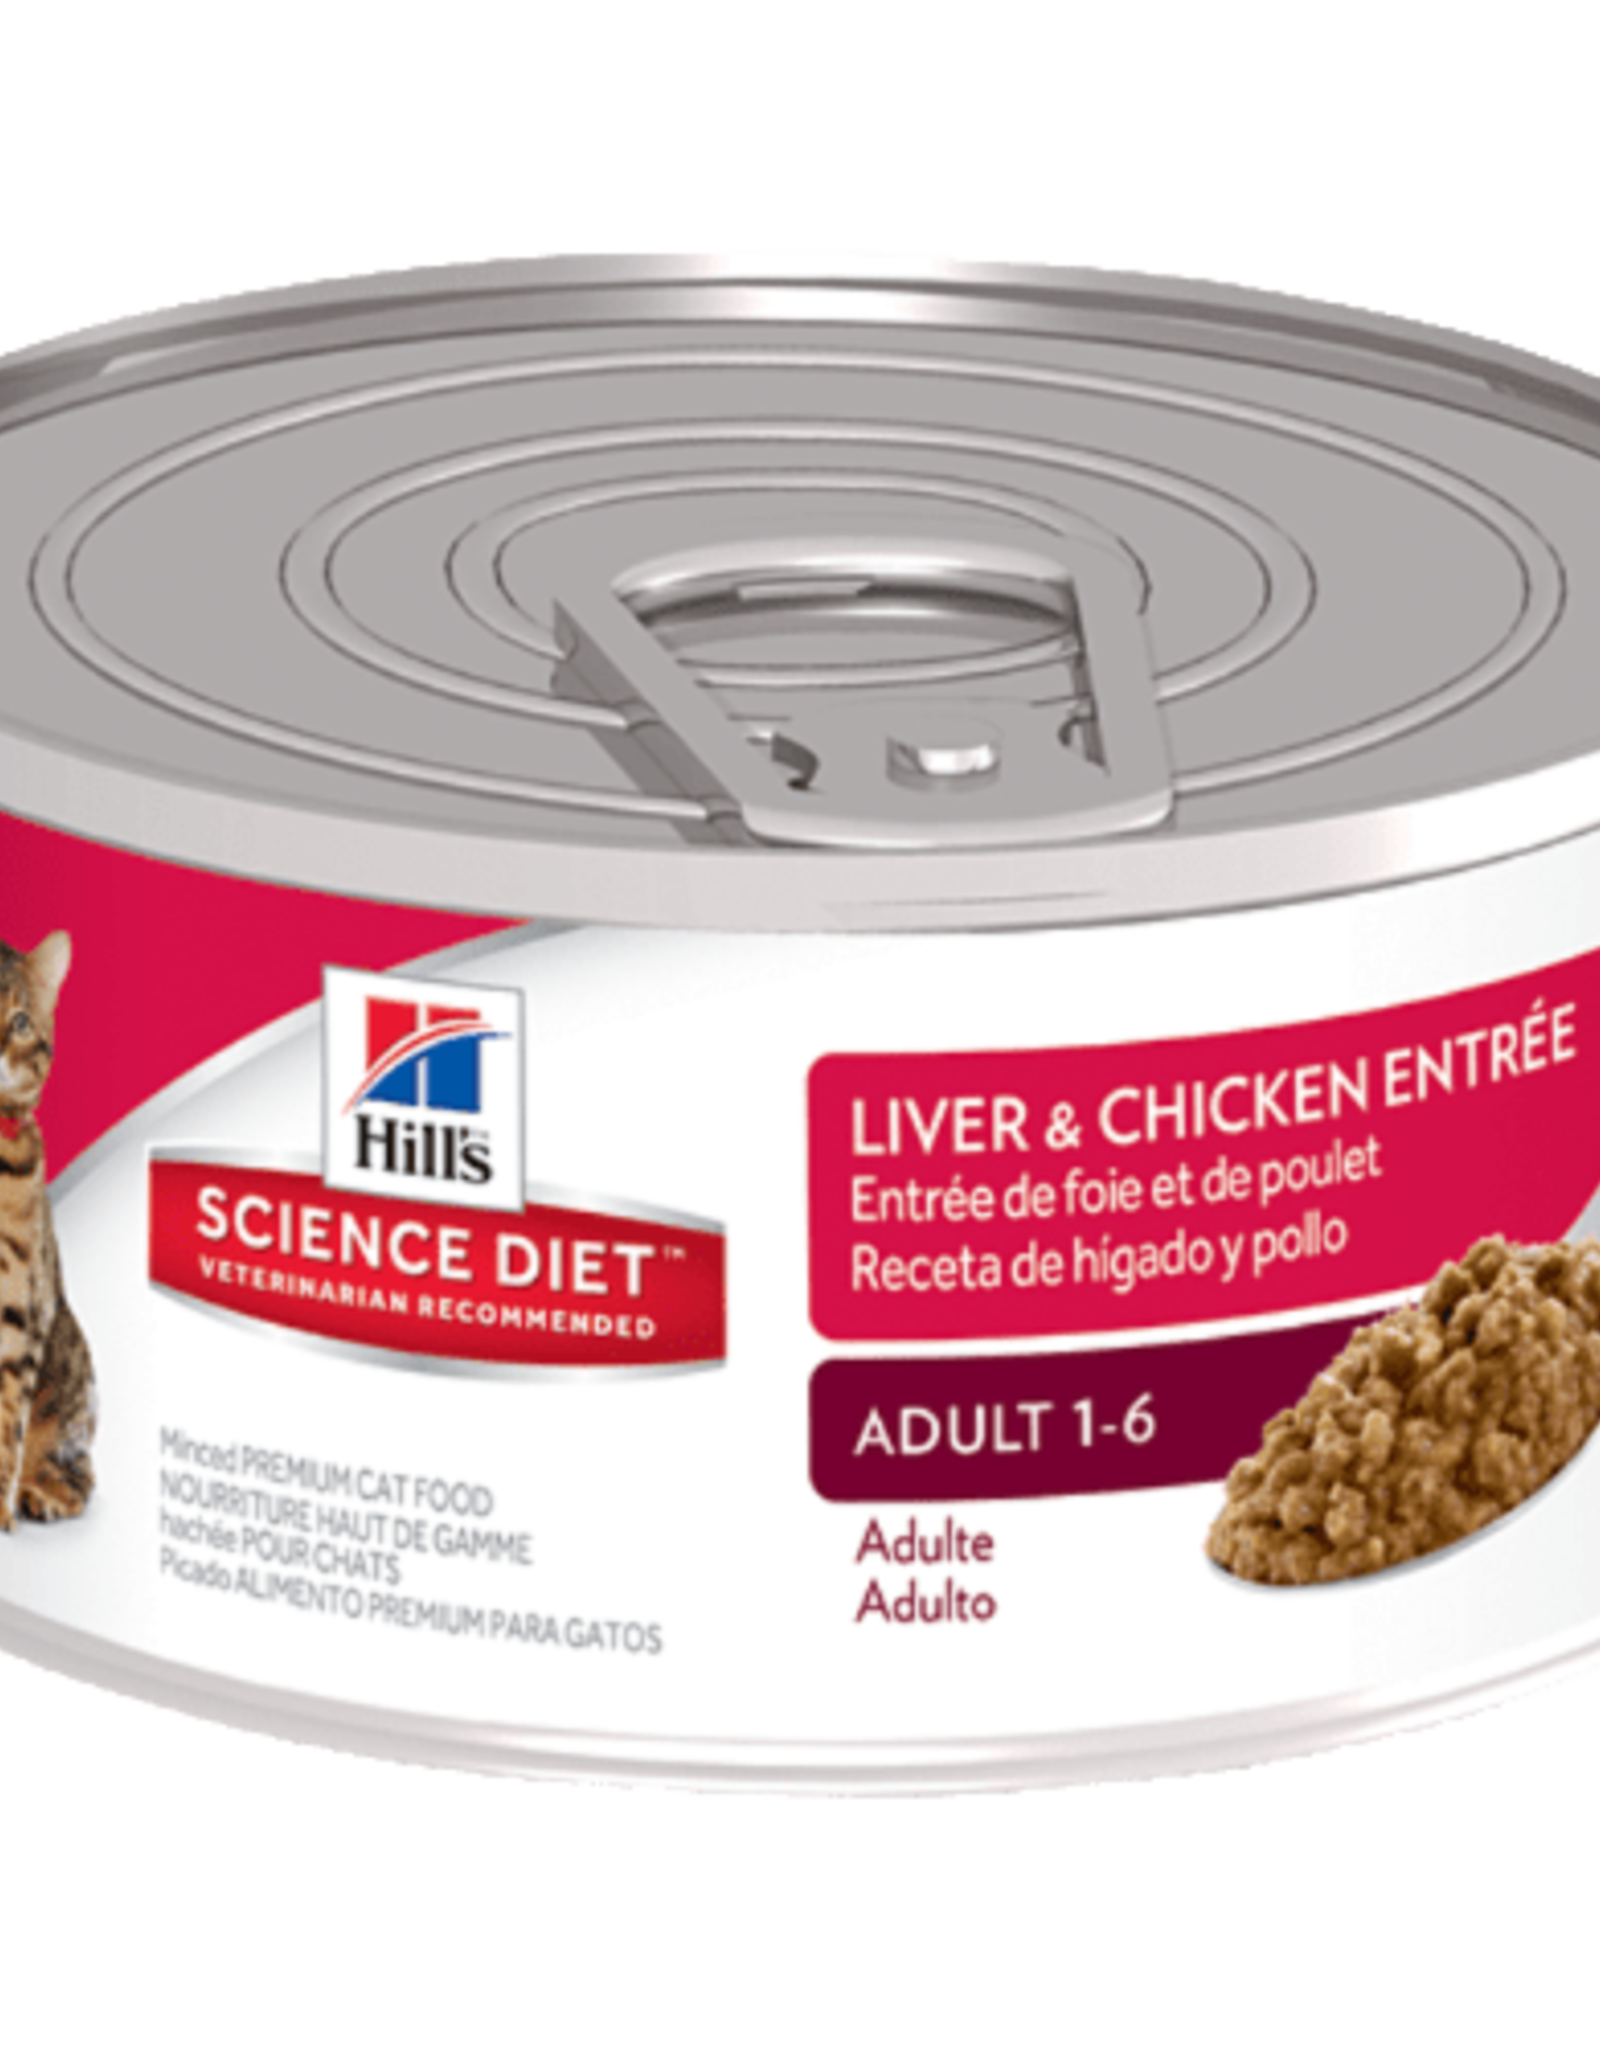 SCIENCE DIET HILL'S SCIENCE DIET FELINE CAN ADULT LIVER & CHICKEN 2.9OZ CASE OF 24